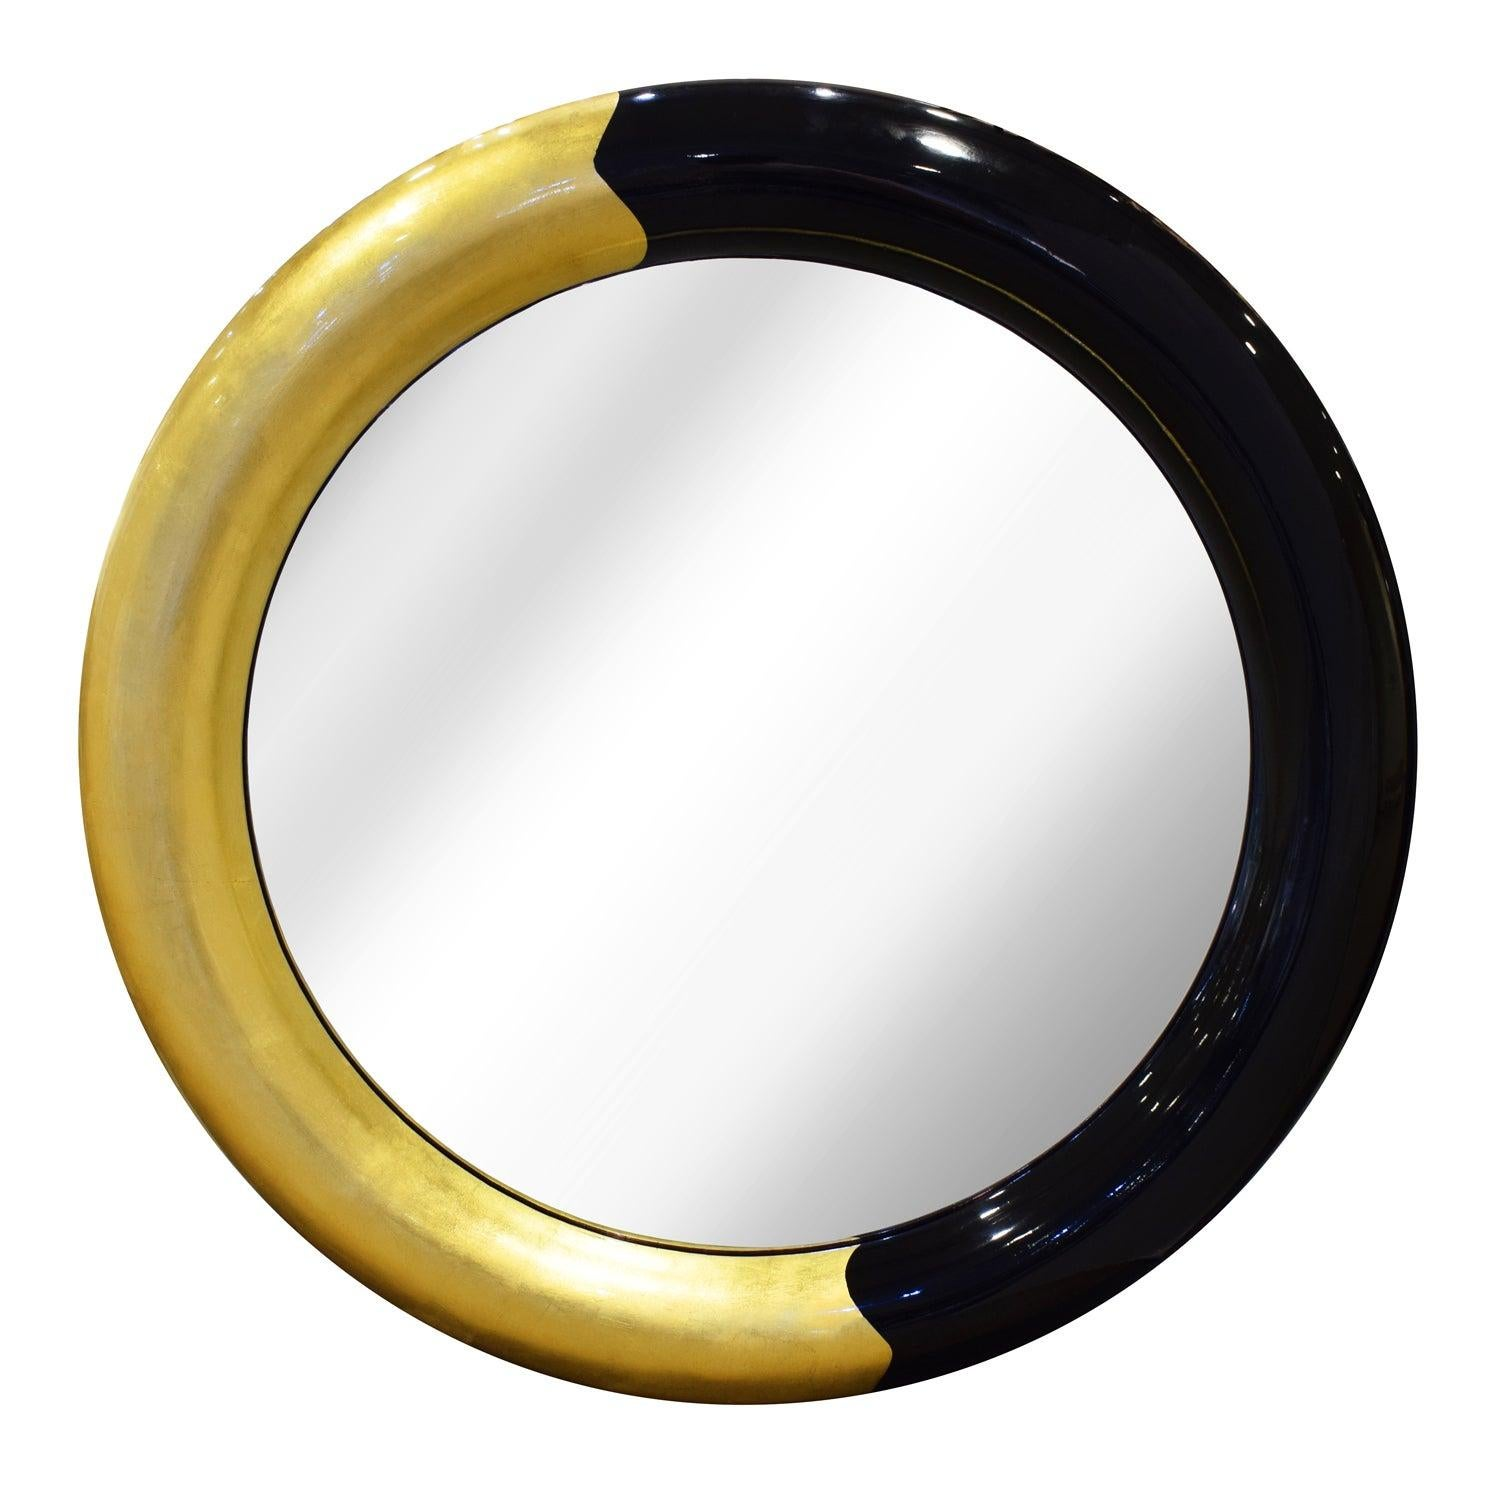 """Karl Springer Wall Hanging """"Bullseye Mirror"""" in Lacquer and Gold Leaf, 1980s"""